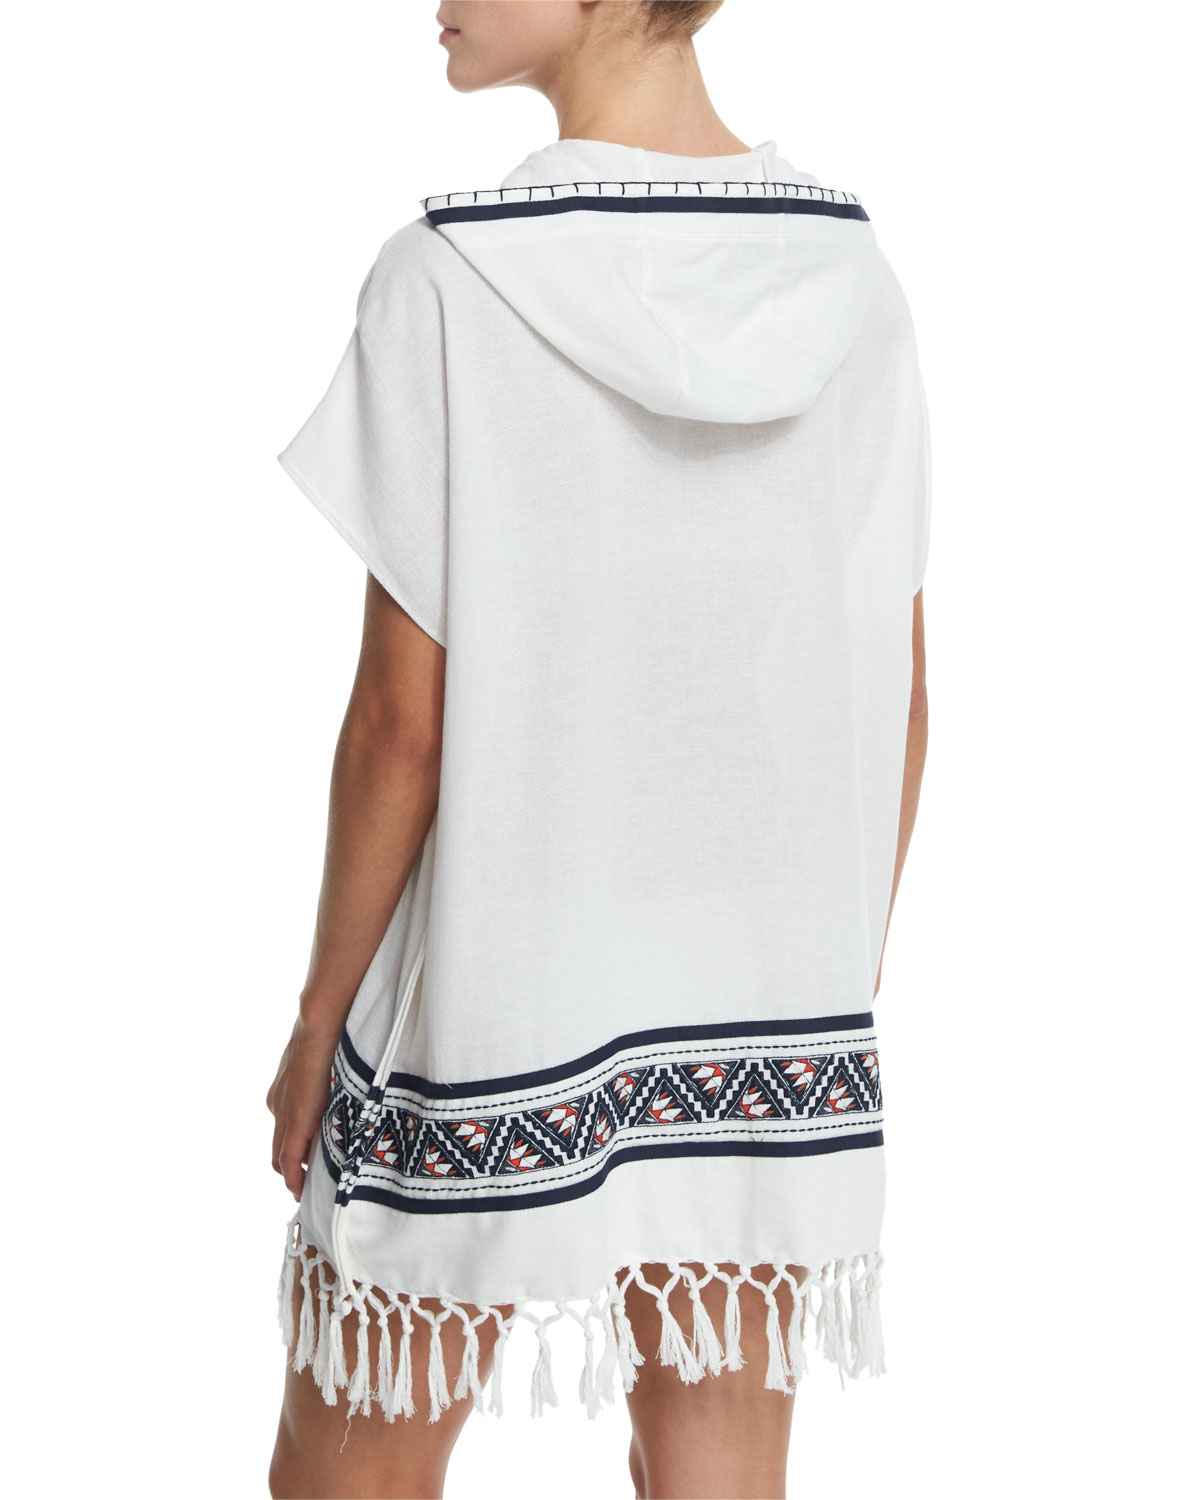 75c0da90ce Tory Burch Embroidered Beach Poncho Coverup With Hood in White - Lyst